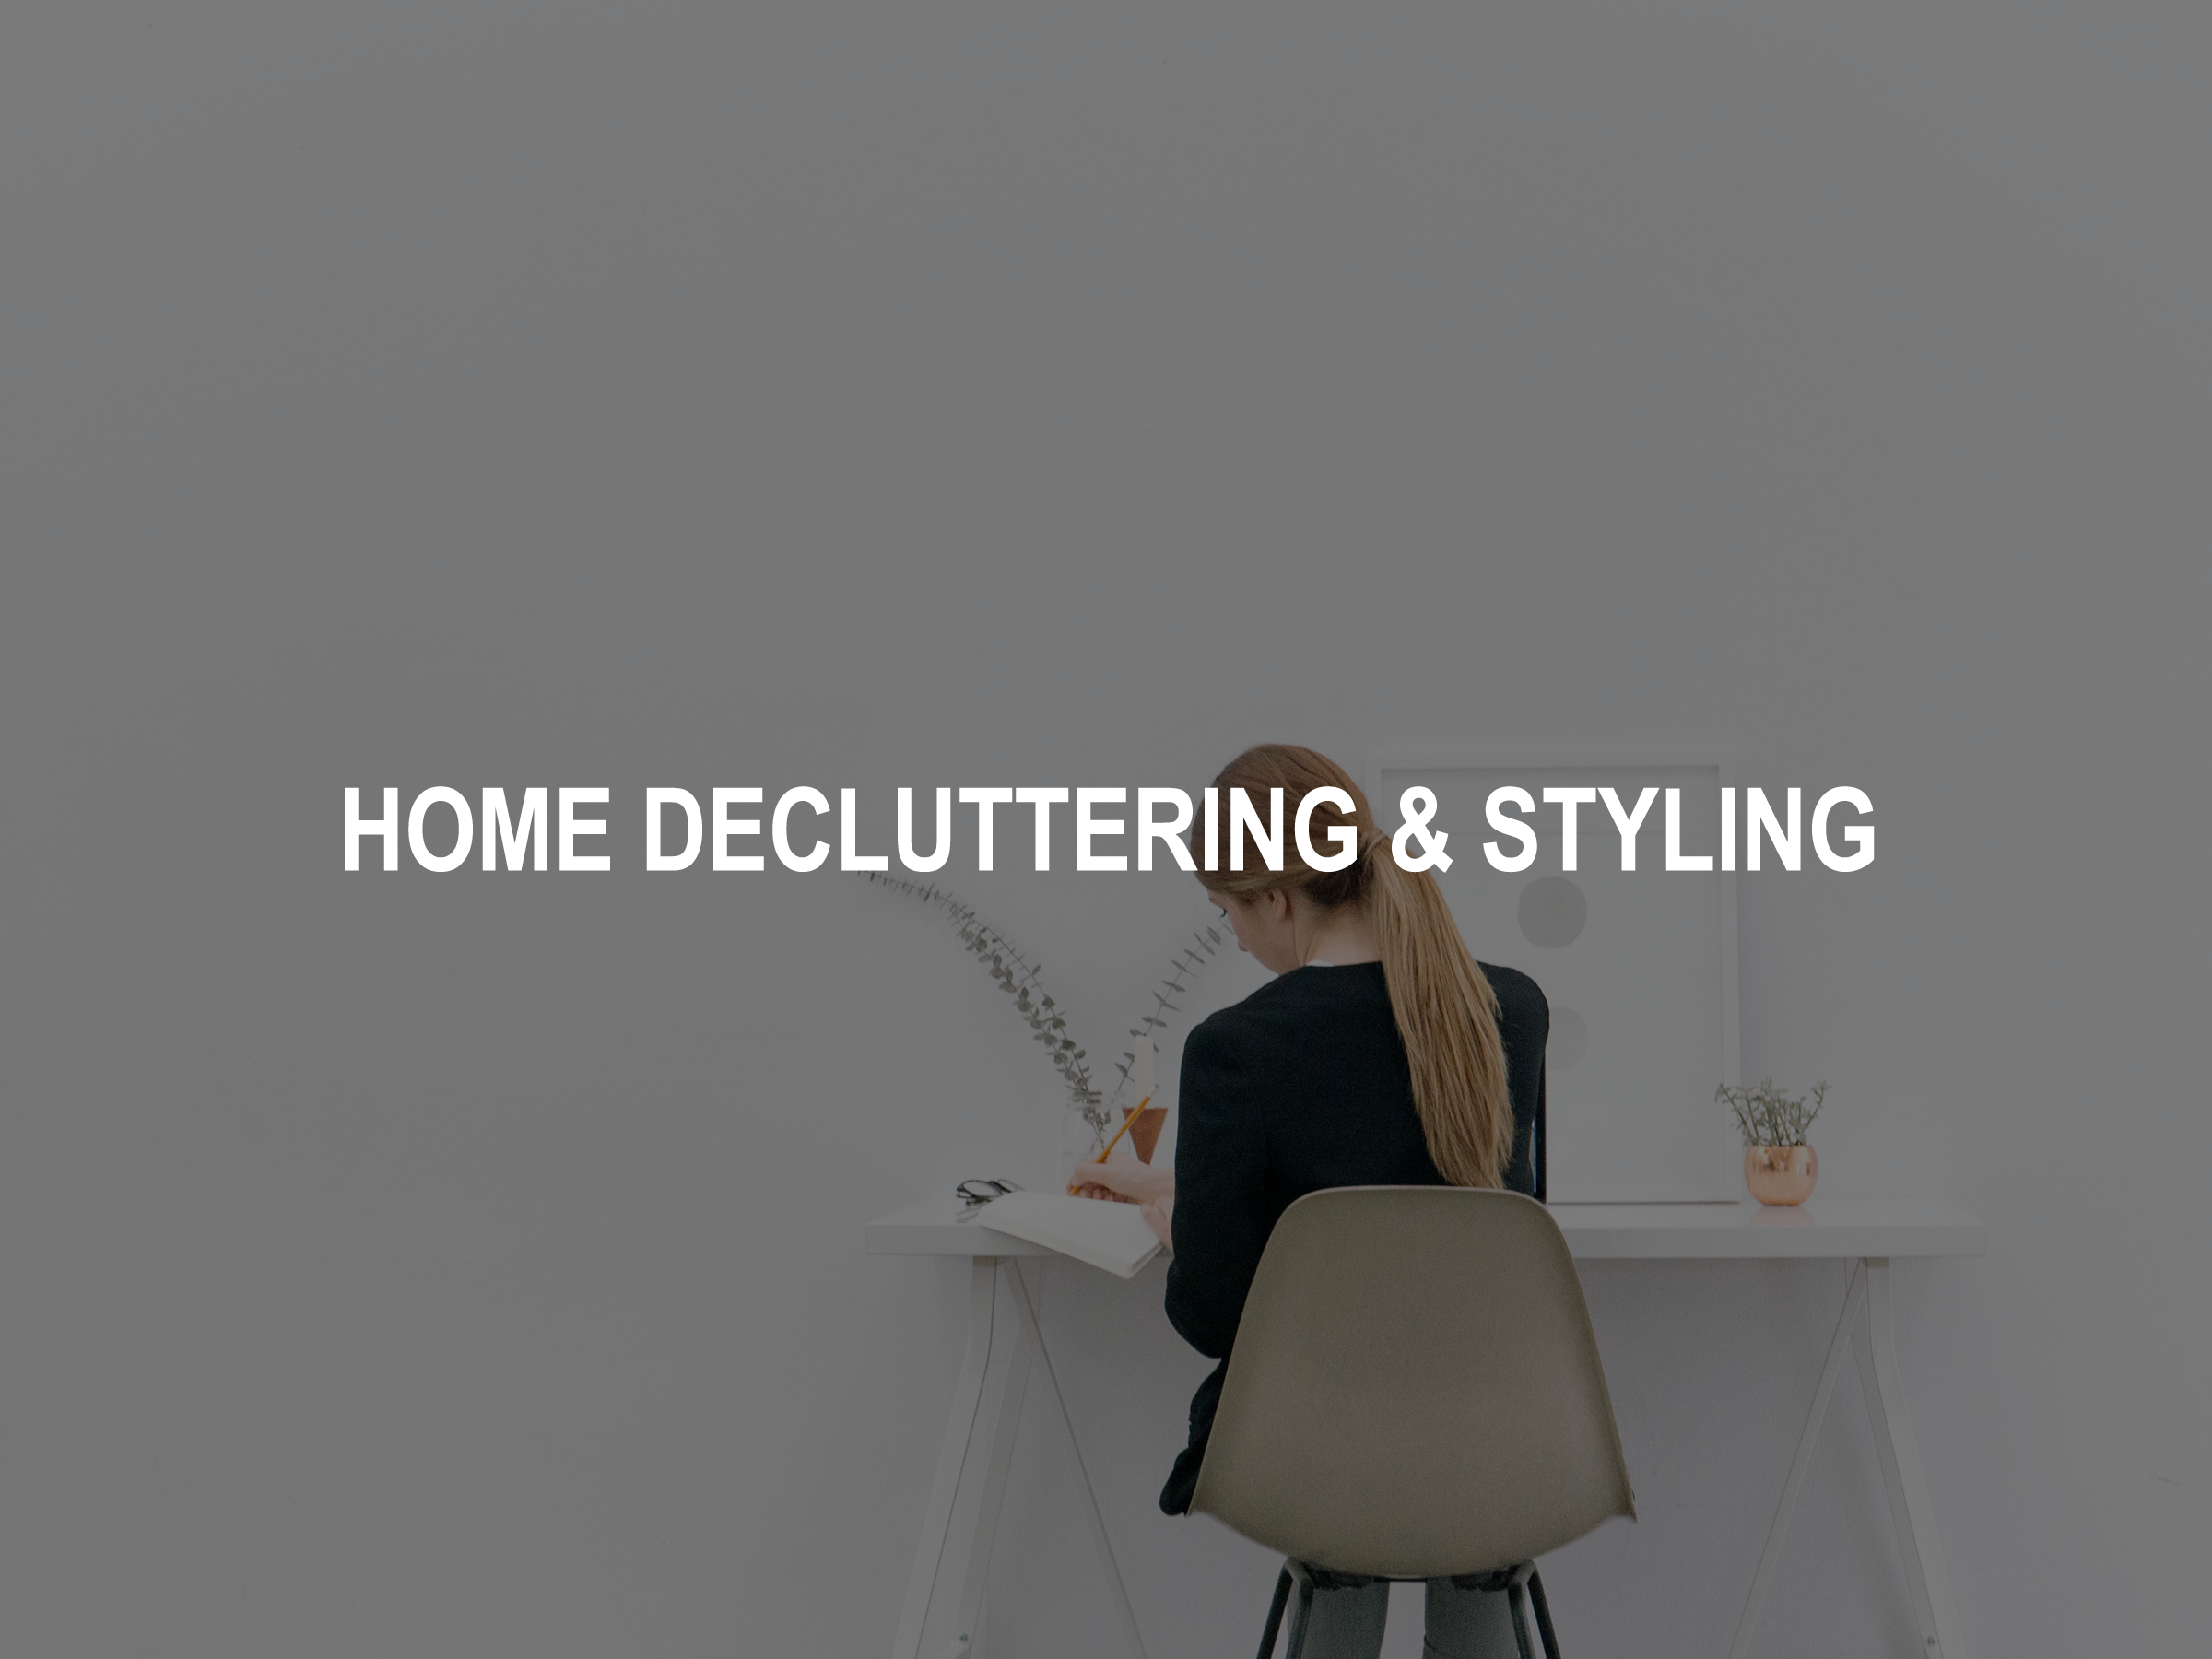 HOME DECLUTTERING & STYLING